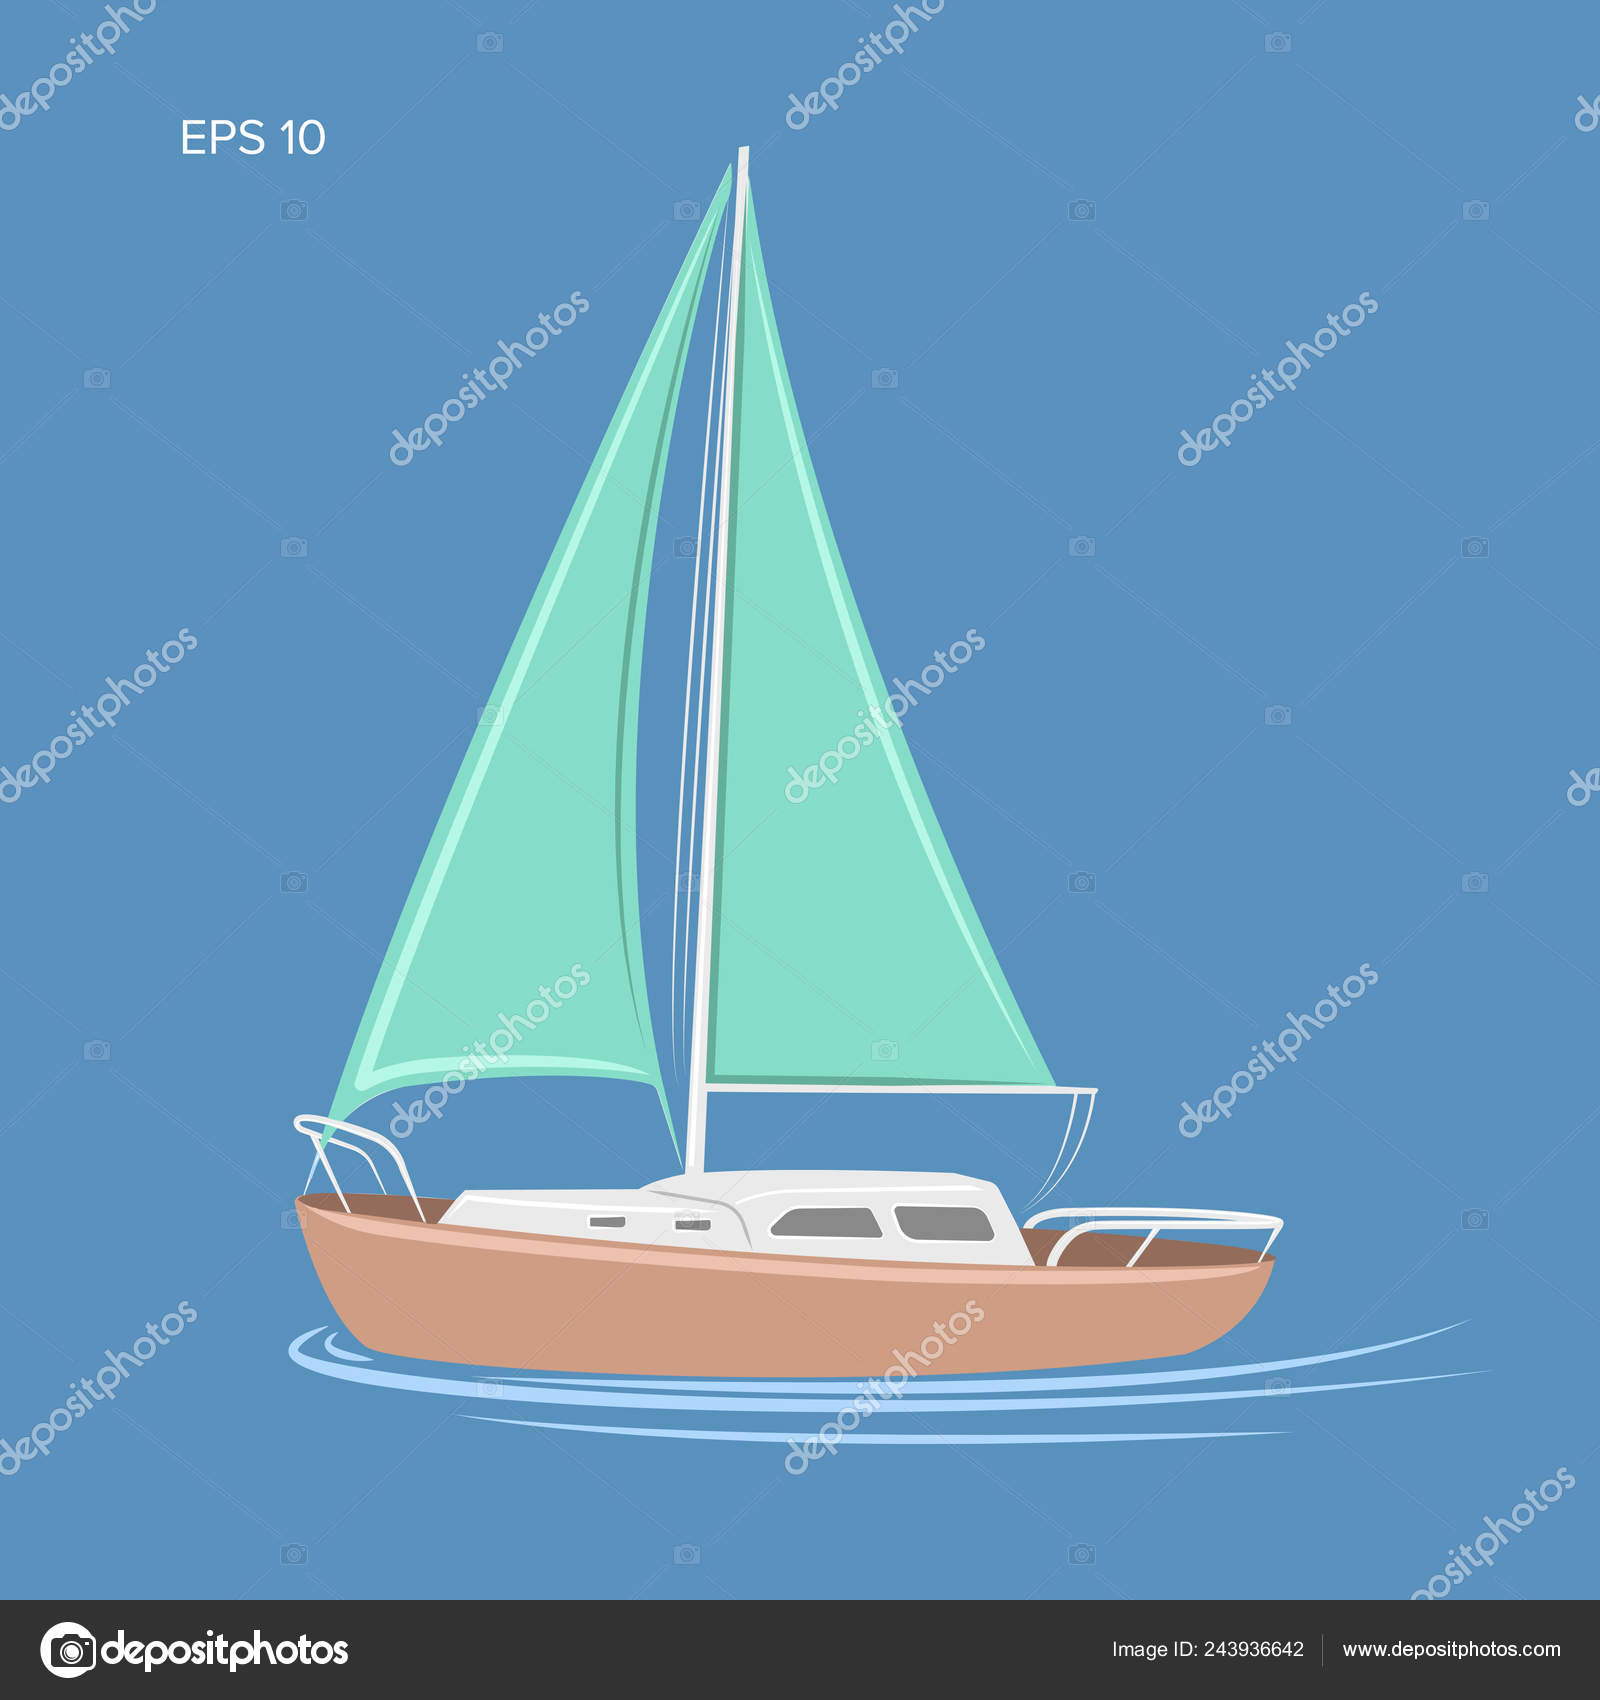 Small sailboat vector illustration  Small Yacht with sail